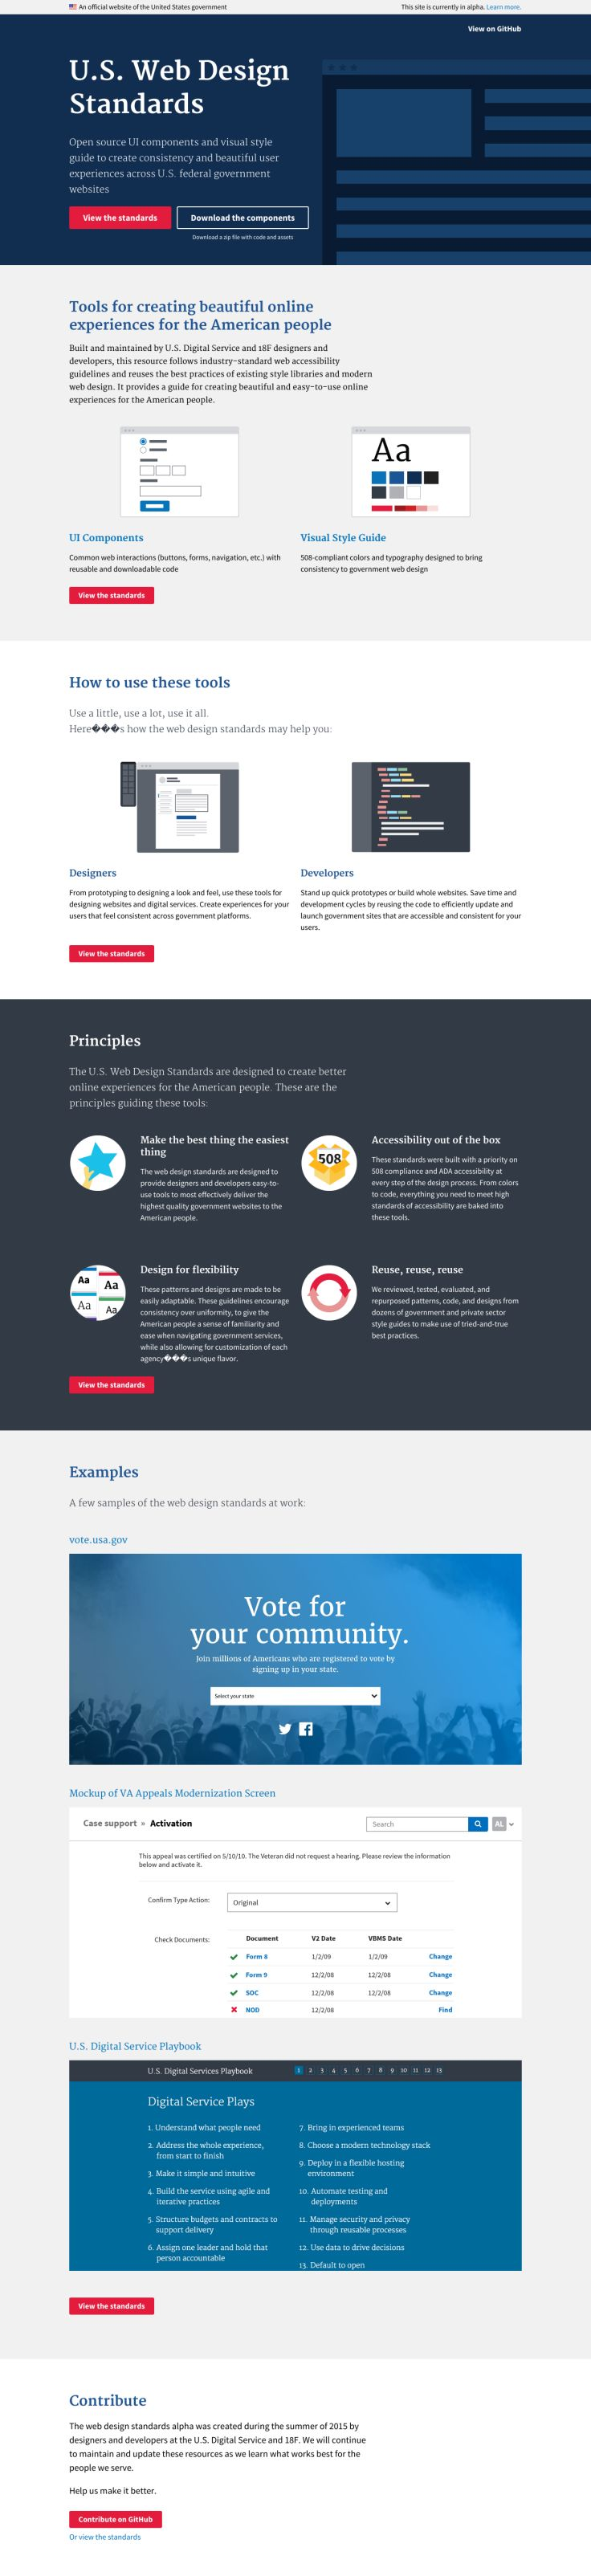 Open source UI components and visual style guide to create consistency and beautiful user experiences across U.S. federal government websites.